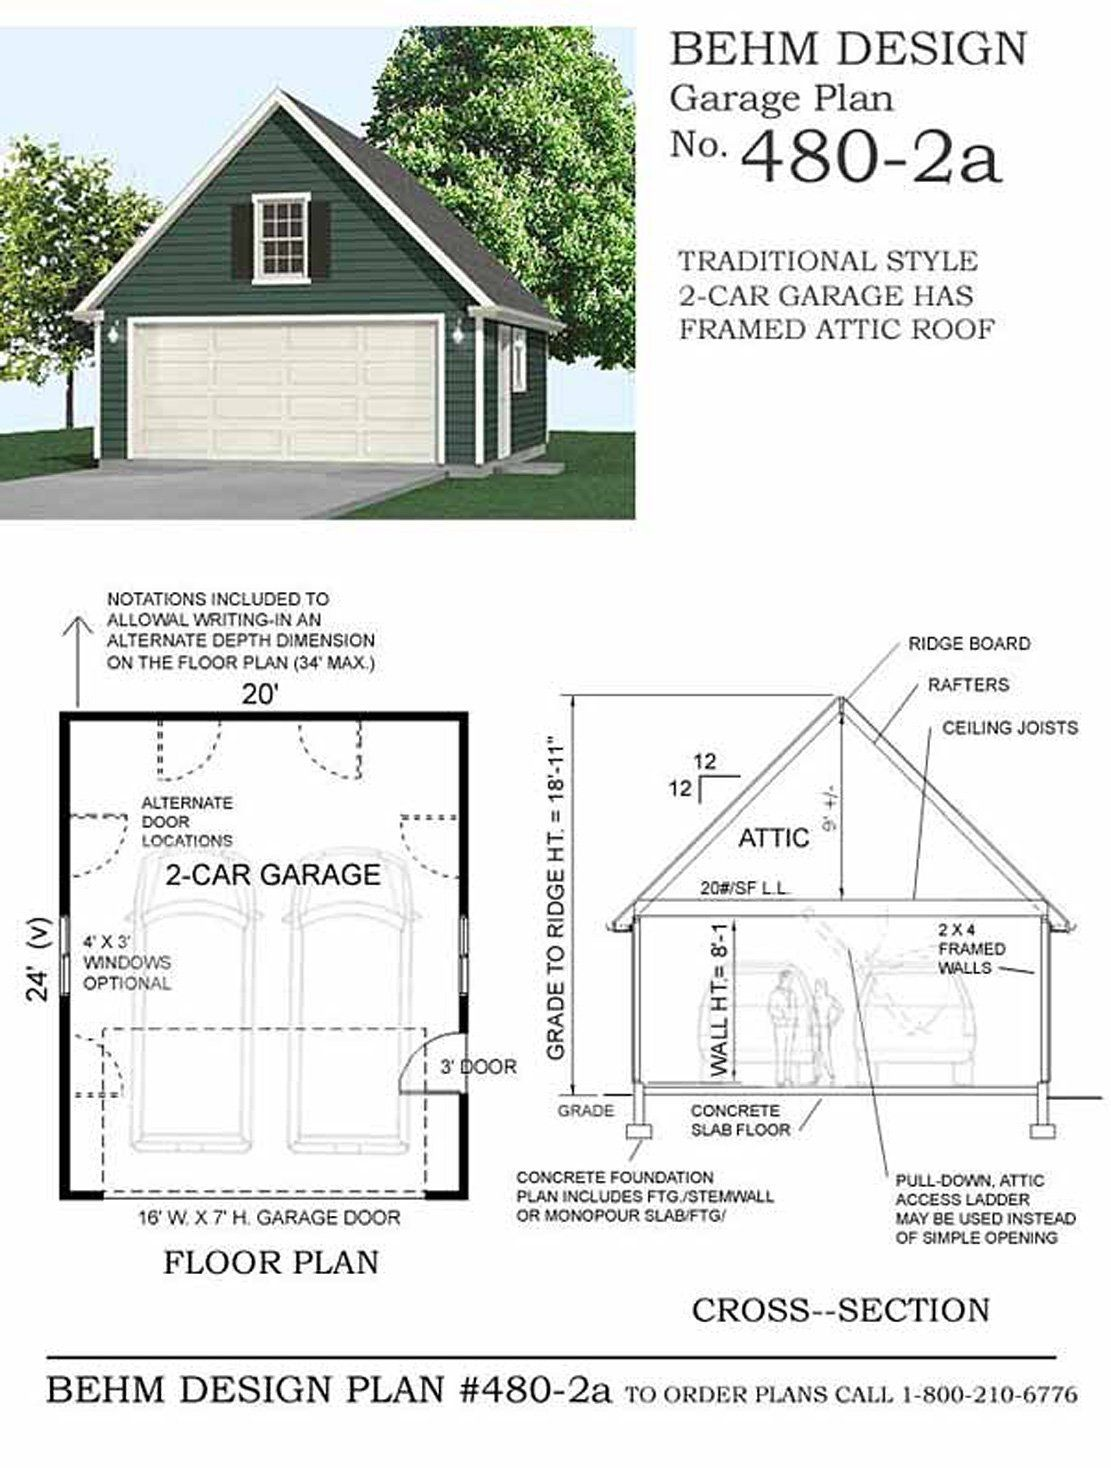 Garage Plans 2 Car Compact Steep Roof Garage Plan With Attic 480 2a 20 X 24 Two Car By Behm Desi Garage Plans With Loft Garage Plans Garage Design